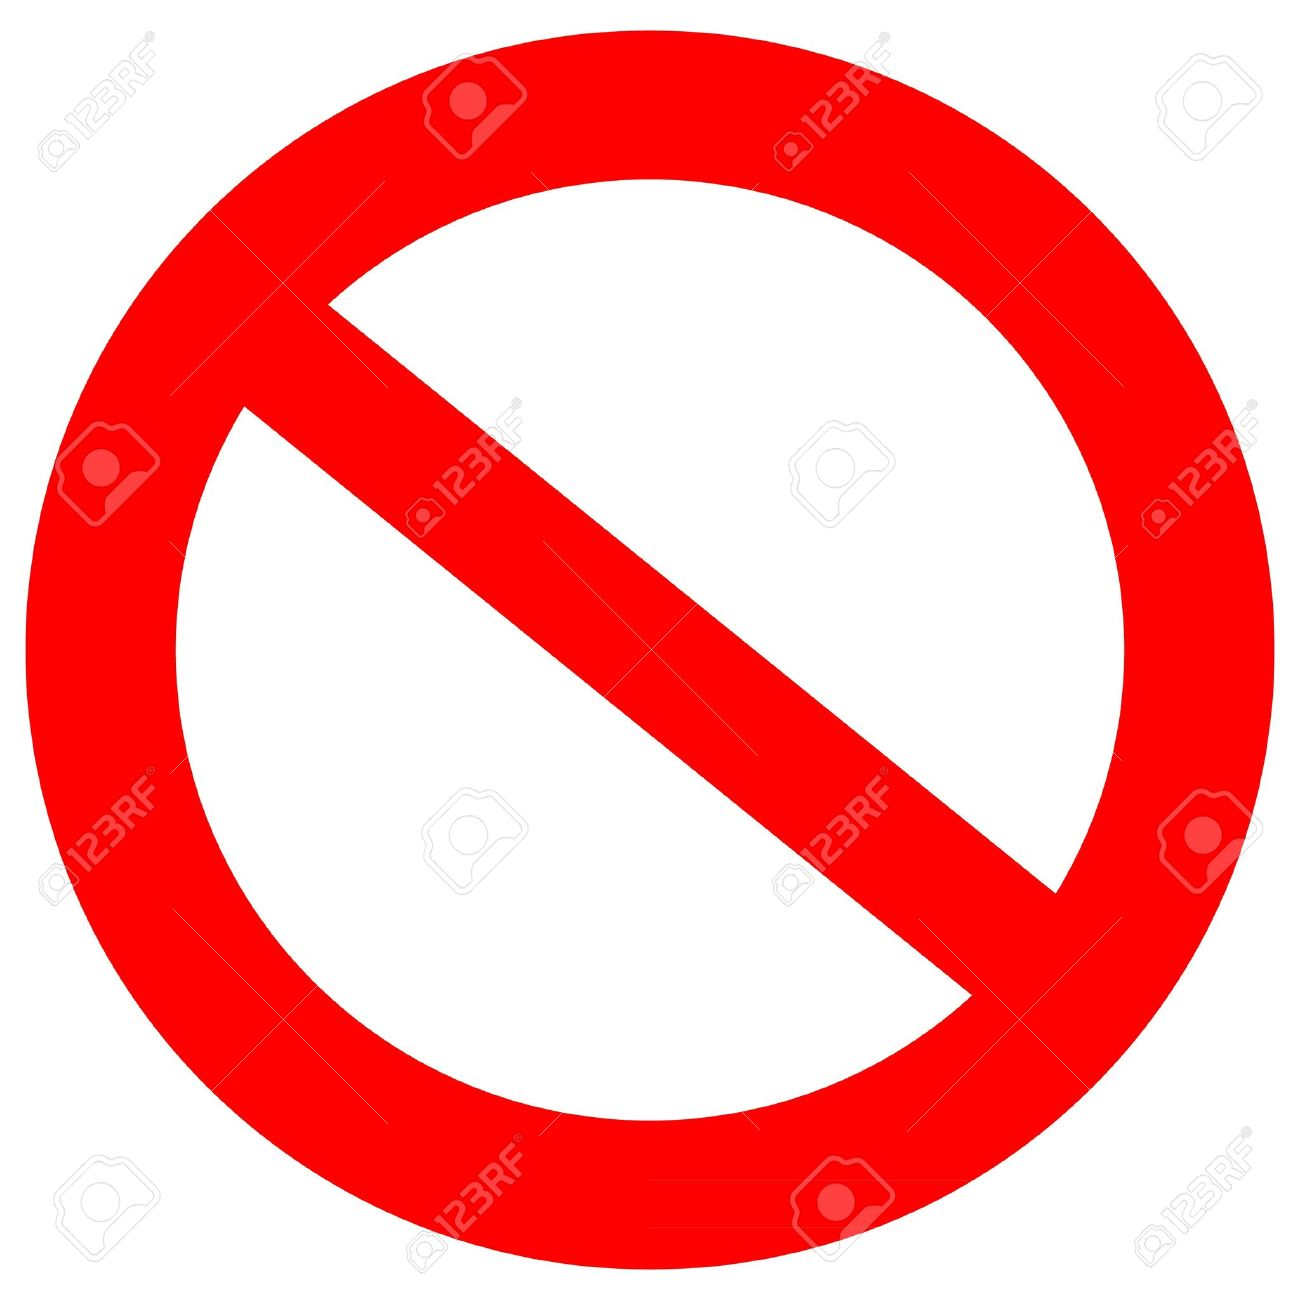 Clipart Not Allowed Symbol.